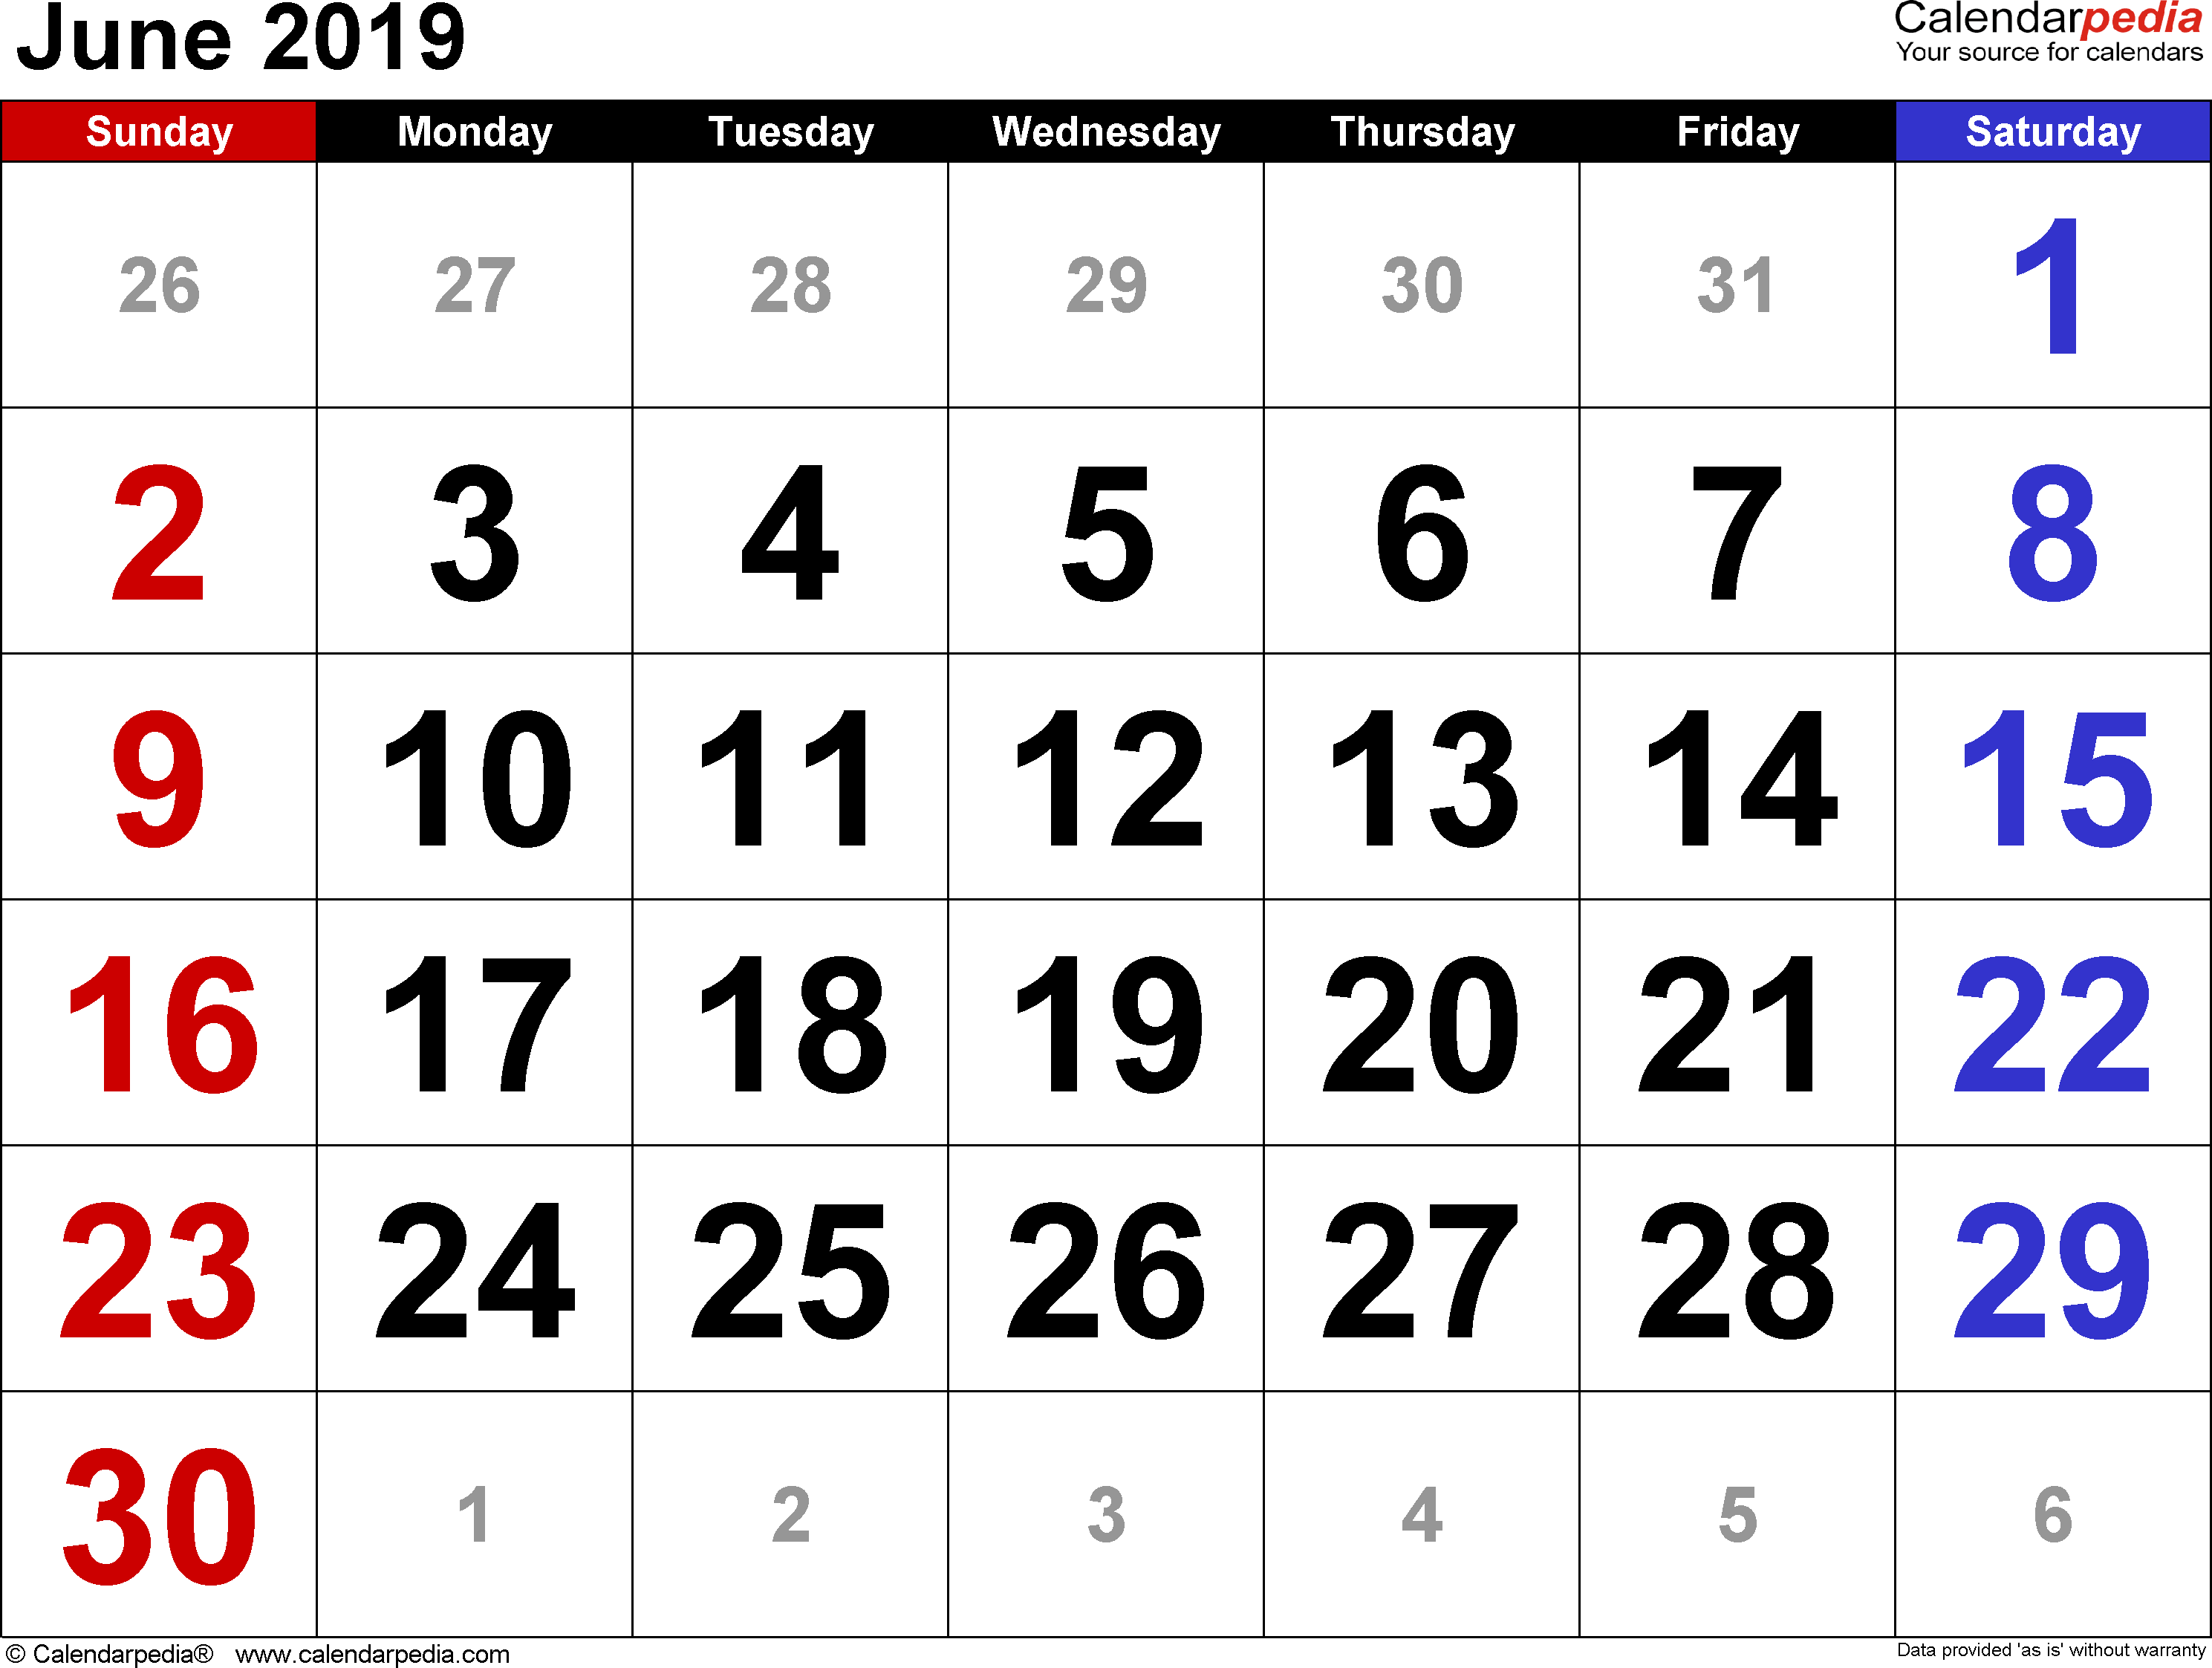 June 2019 Calendar for Word